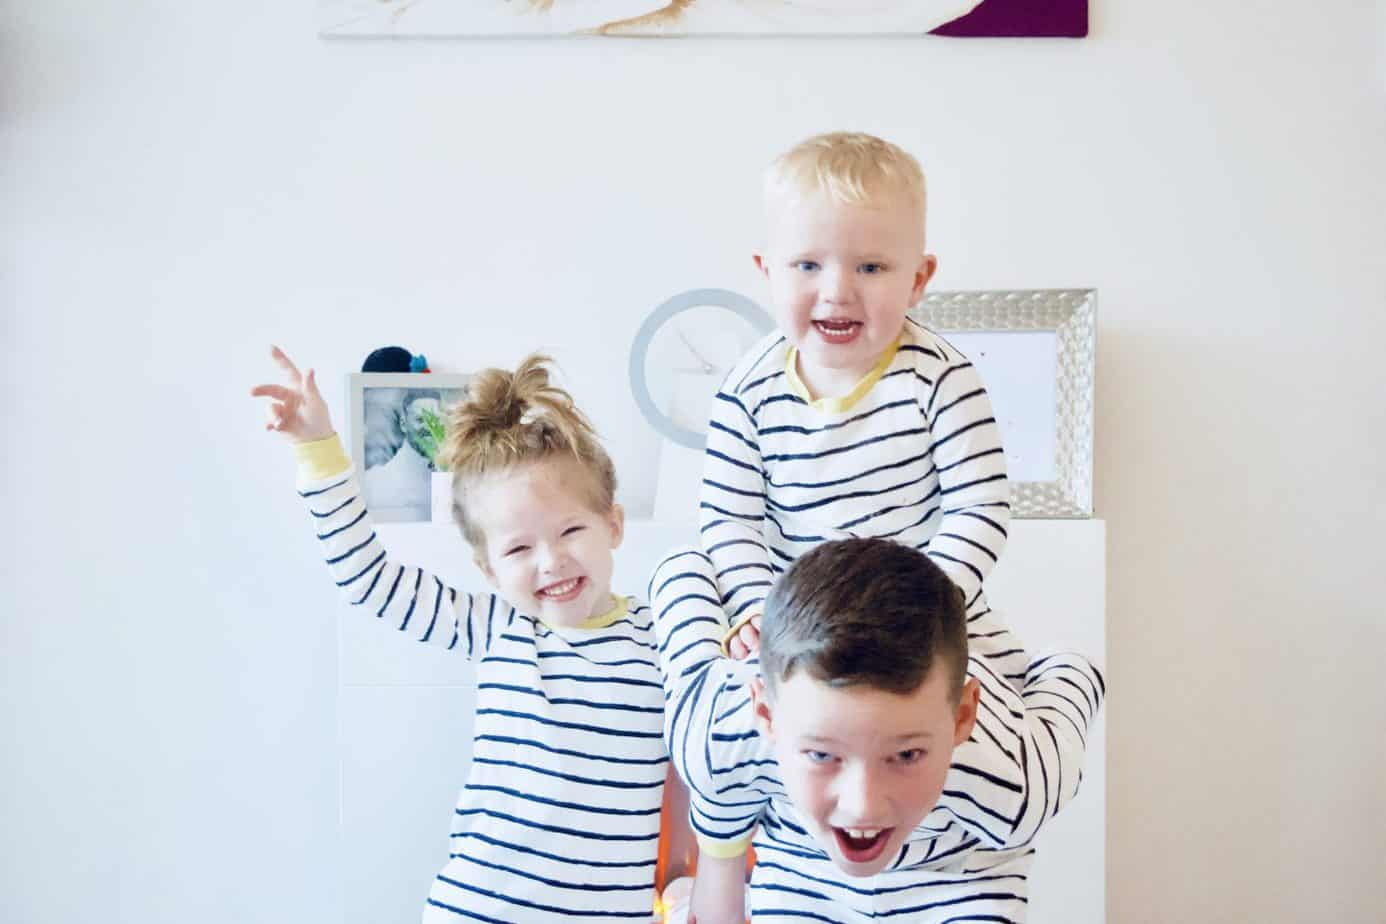 Kids in their organic cotton pyjamas Mr B has Baby k on his back and all are smiling